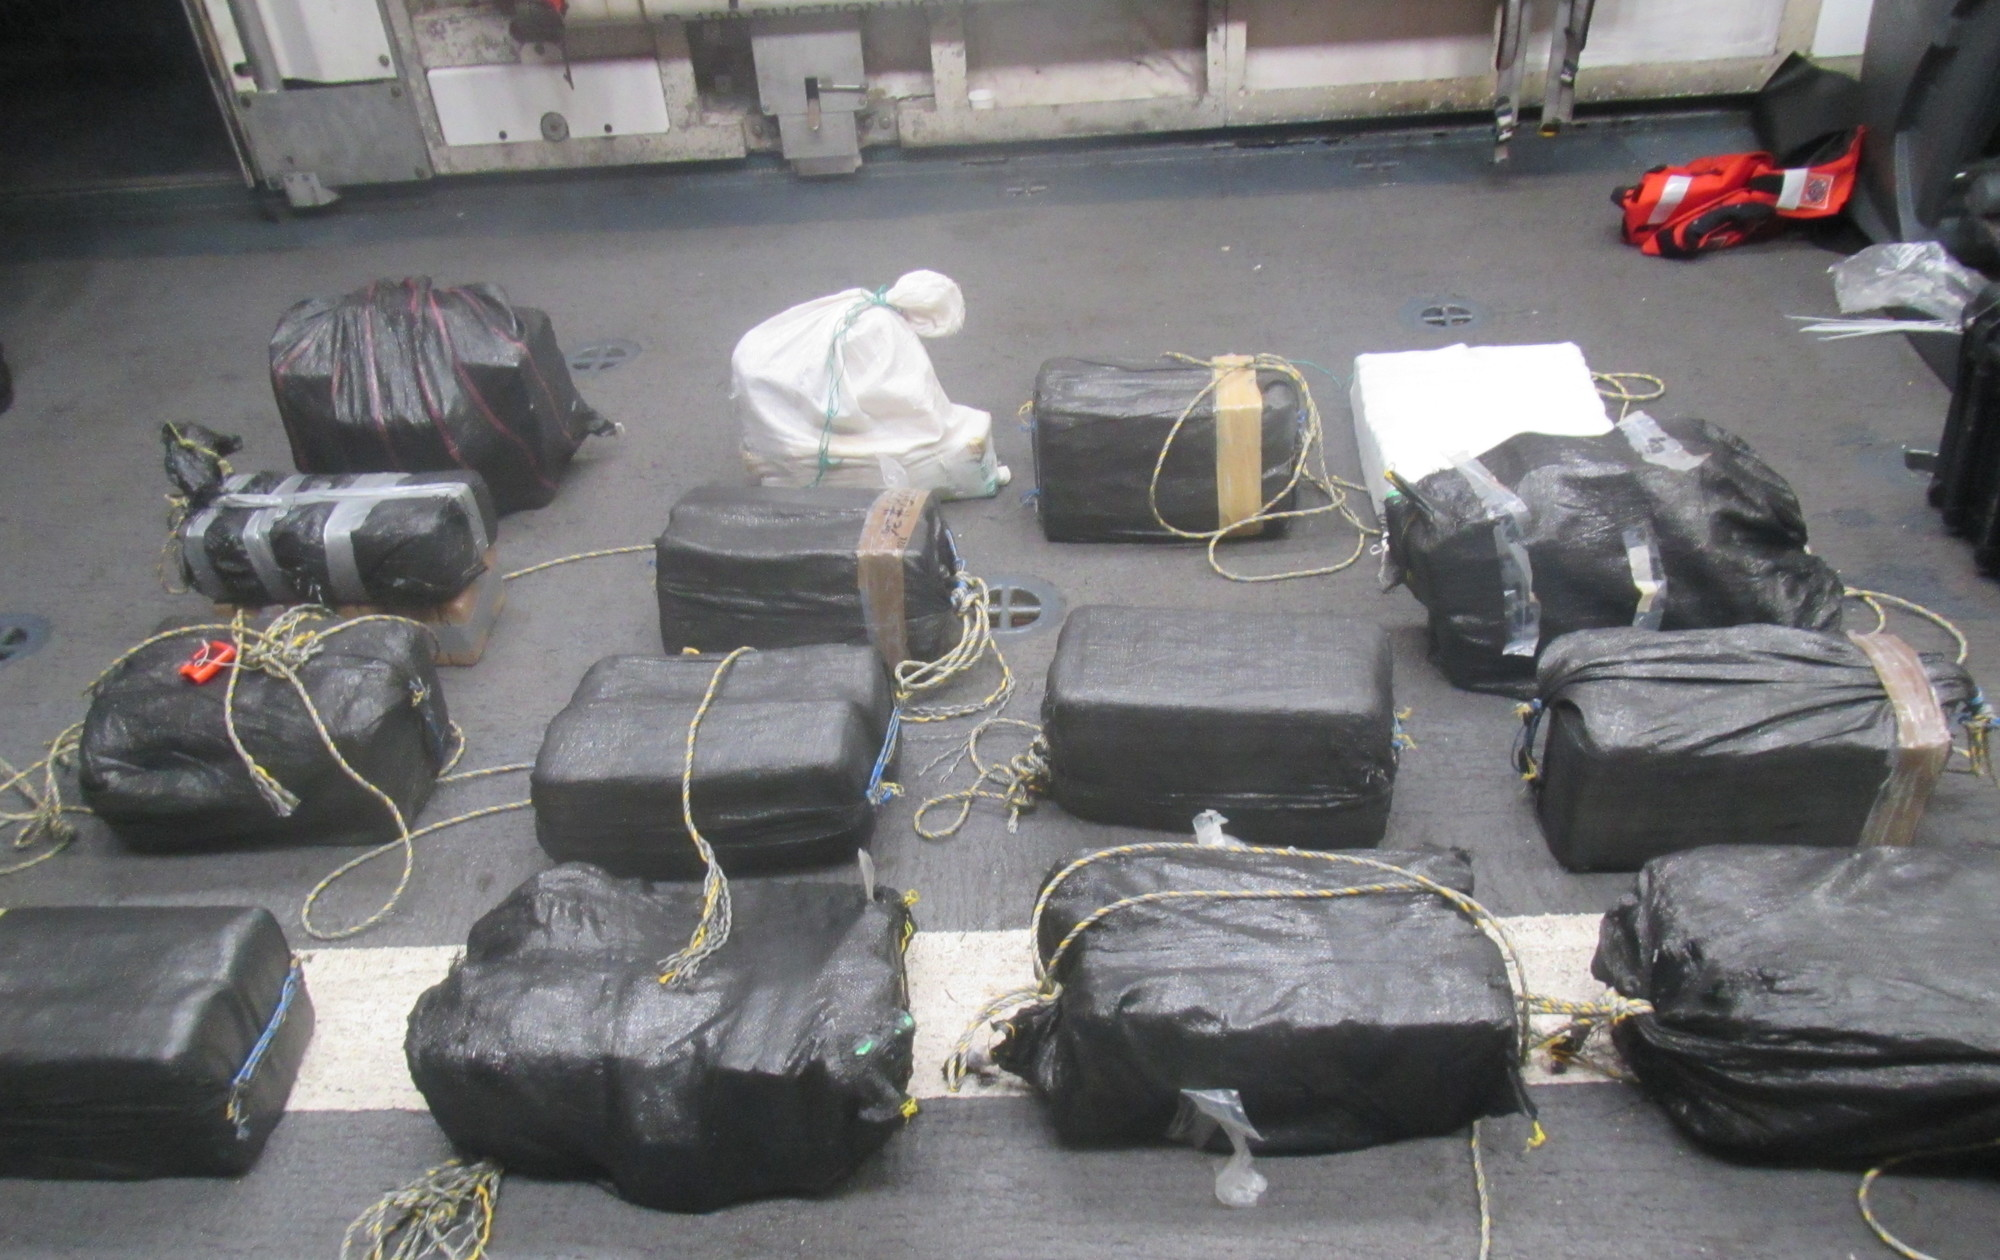 Coast Guard to offload approximately 10 tons of cocaine in Port Everglades